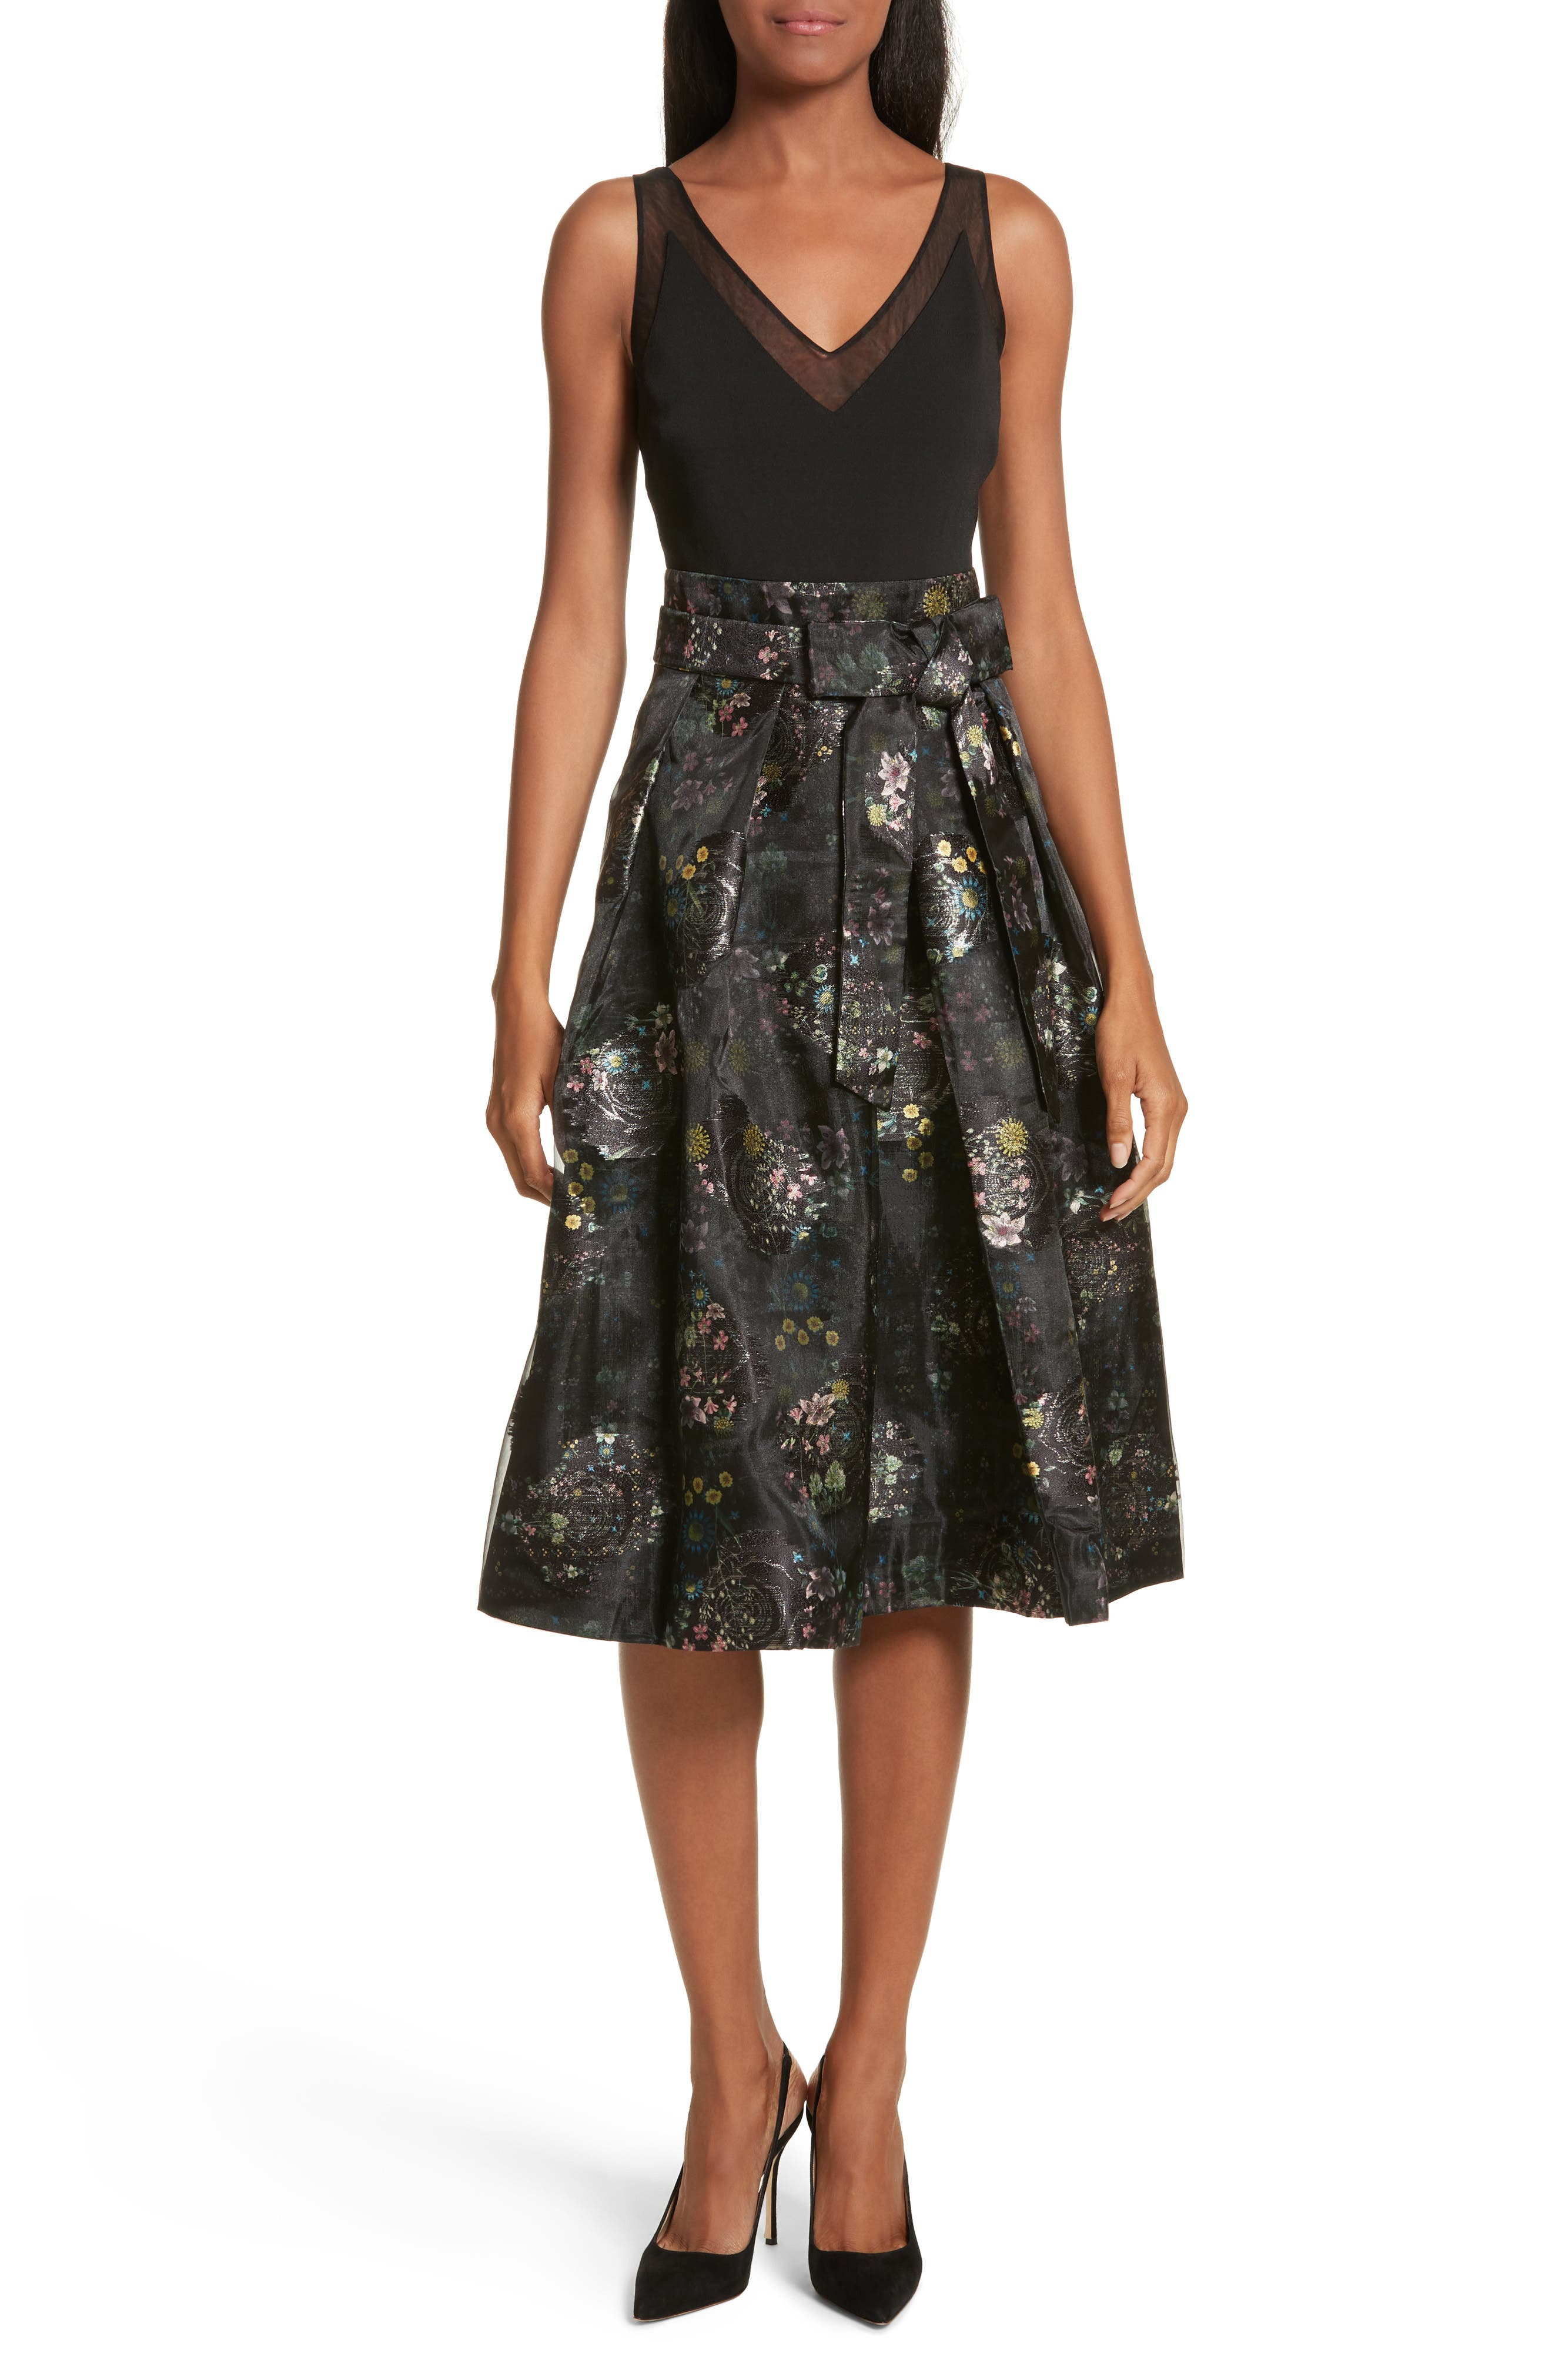 Alternate Image 1 Selected - Ted Baker London Freay Metallic Floral Fit & Flare Dress